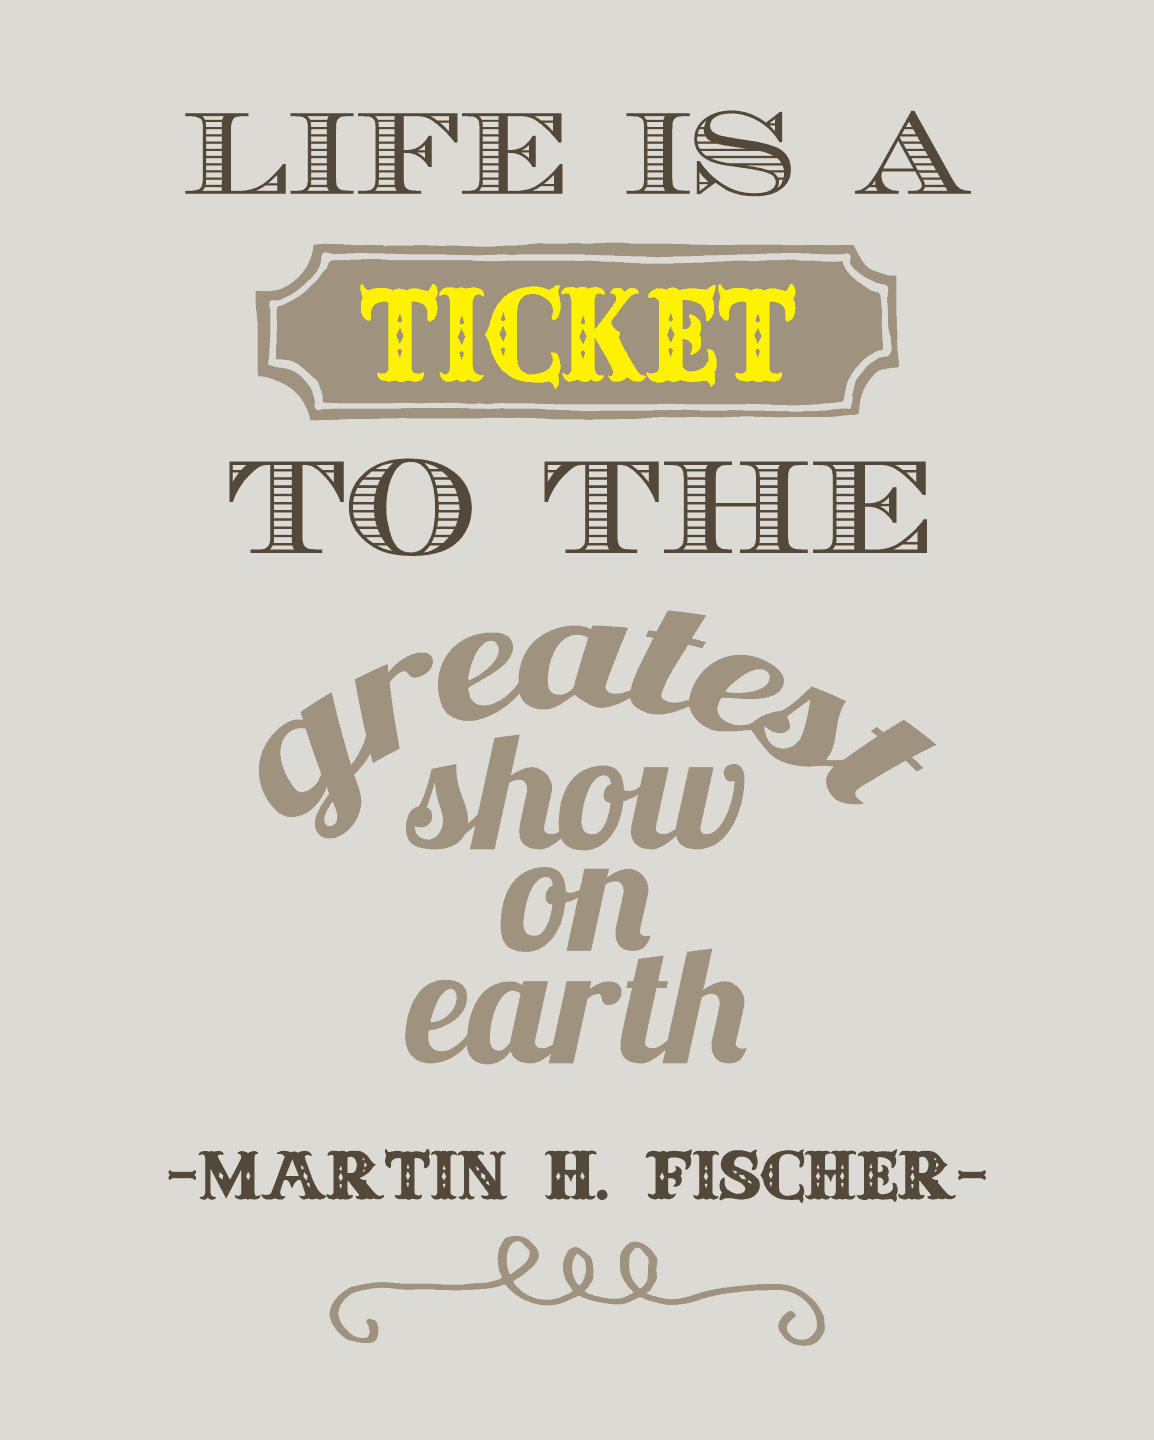 Life is a Ticket Quote